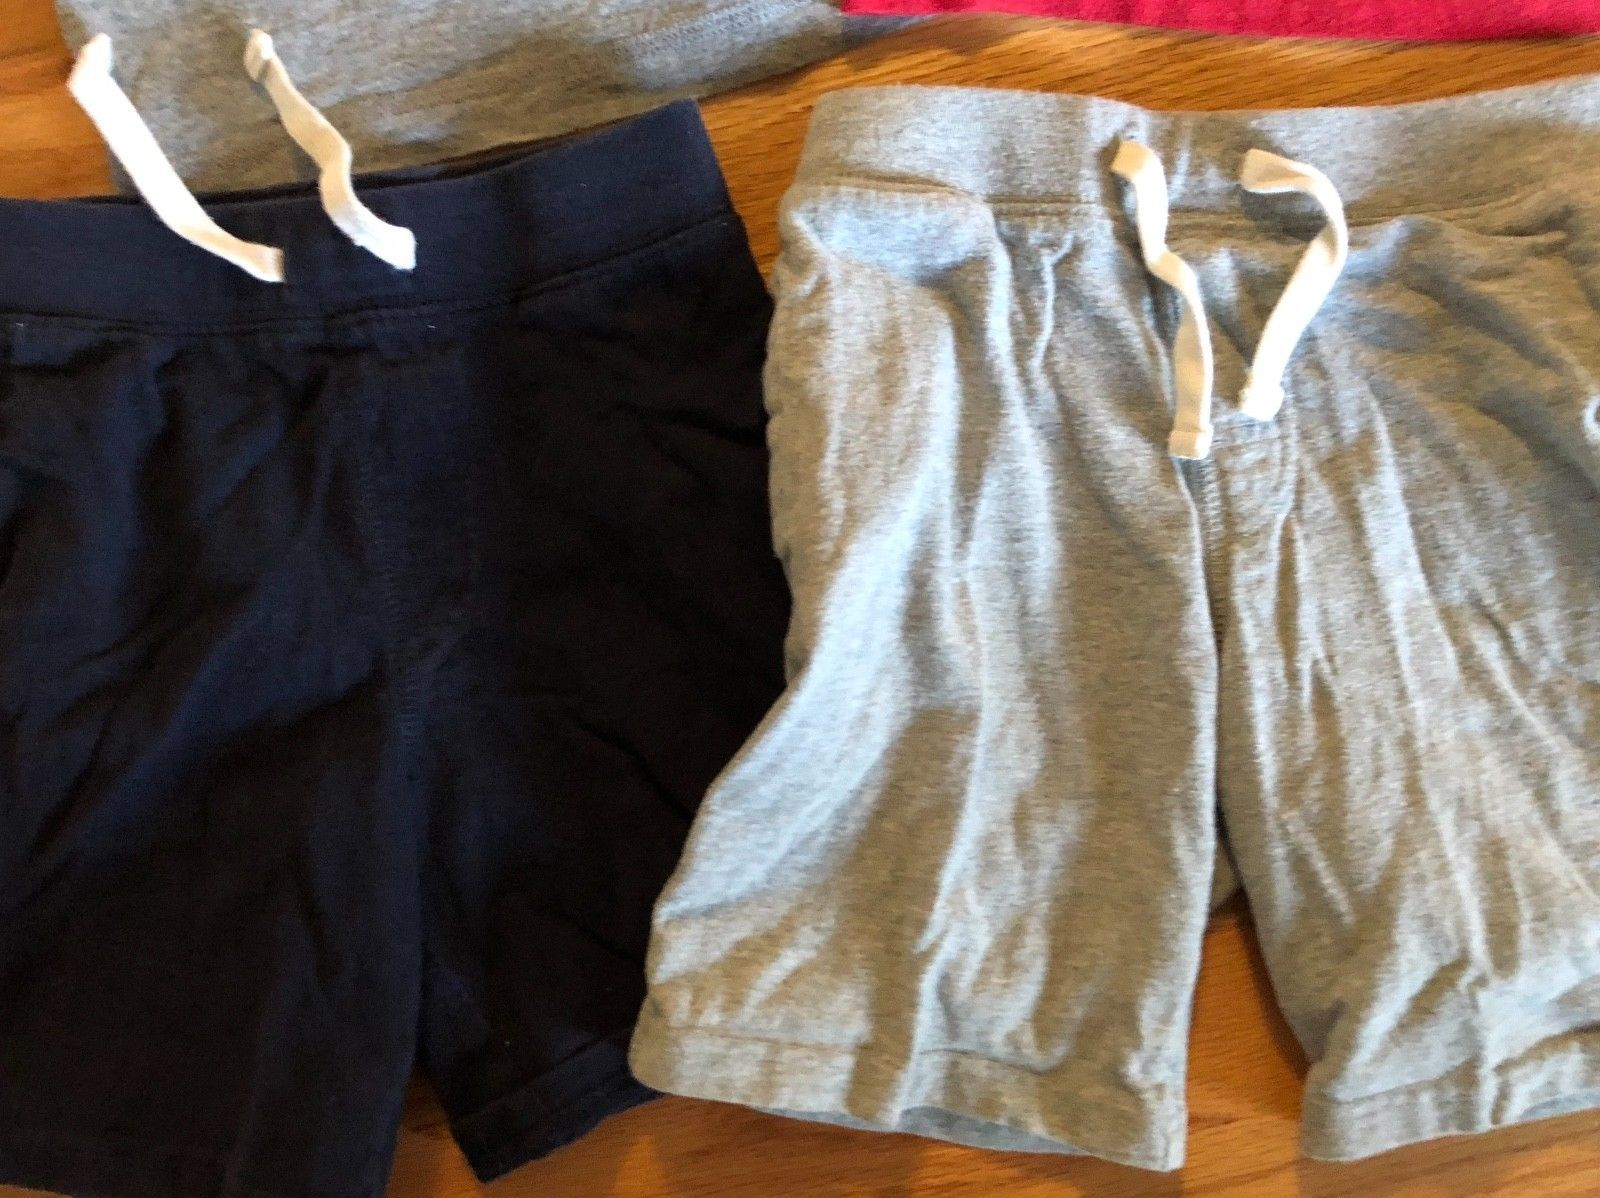 BABY GAP Tank Top + Knit Pull On Shorts Lot of 6 - Summer Outfits Blue Gray Red image 5